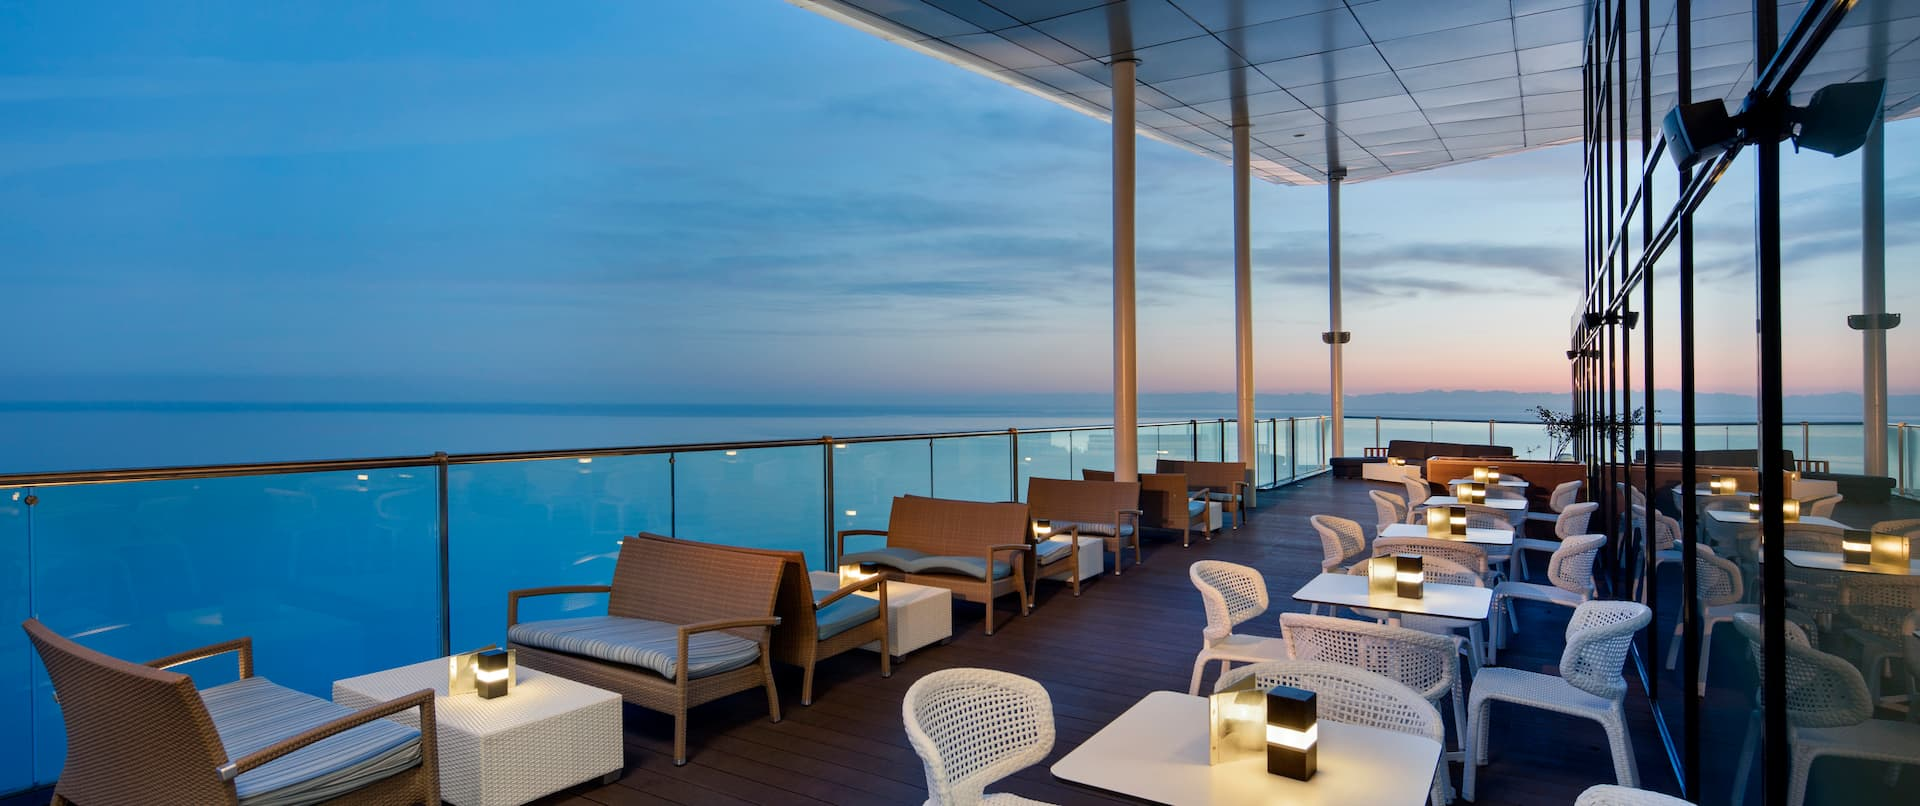 Outdoor Balcony Dining Area at Night with Ocean View